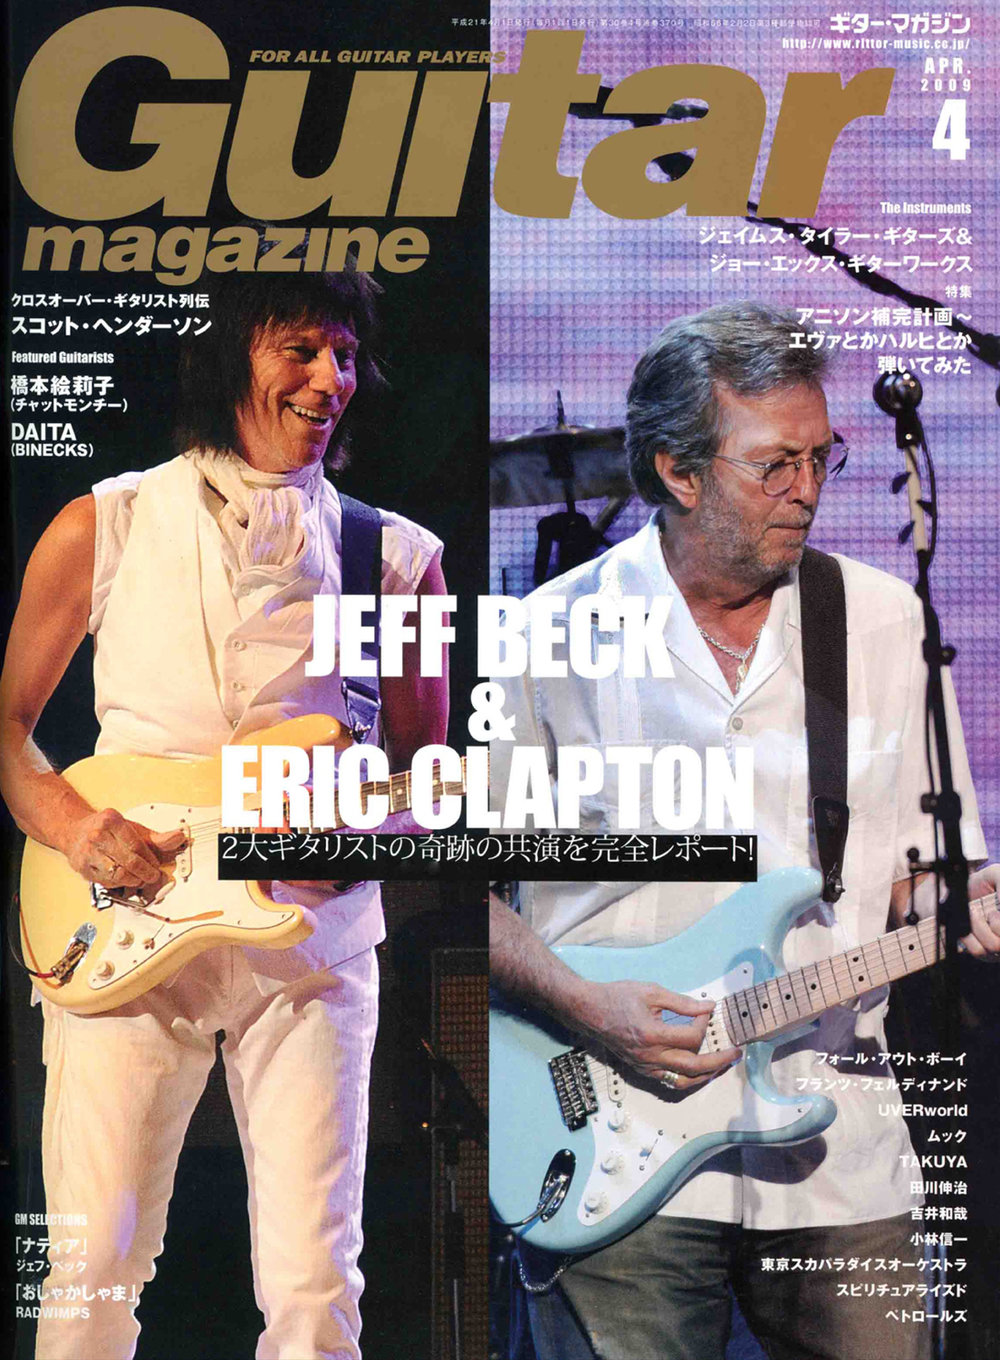 Copy of 2009 Guitar Magazine